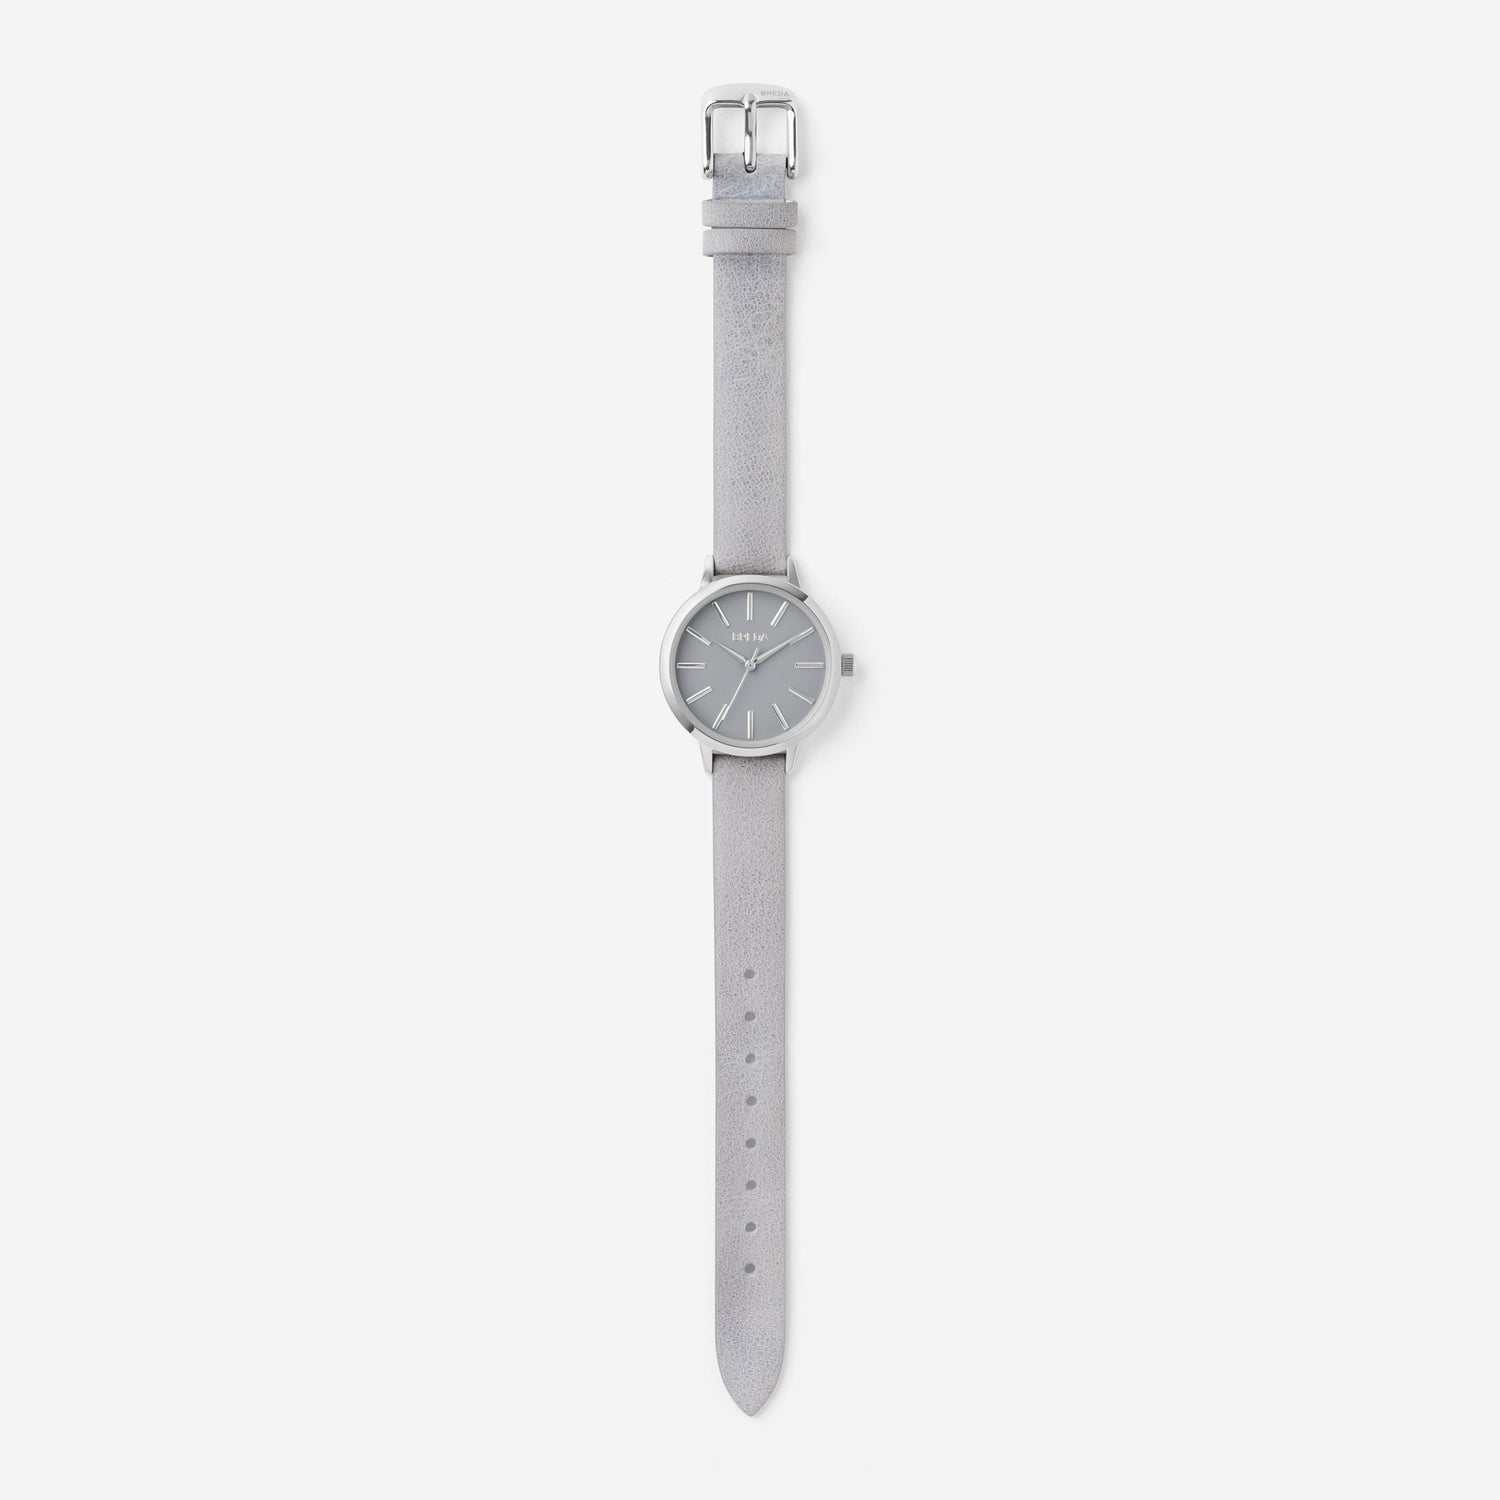 breda-petite-joule-1734e-silver-gray-watch-long